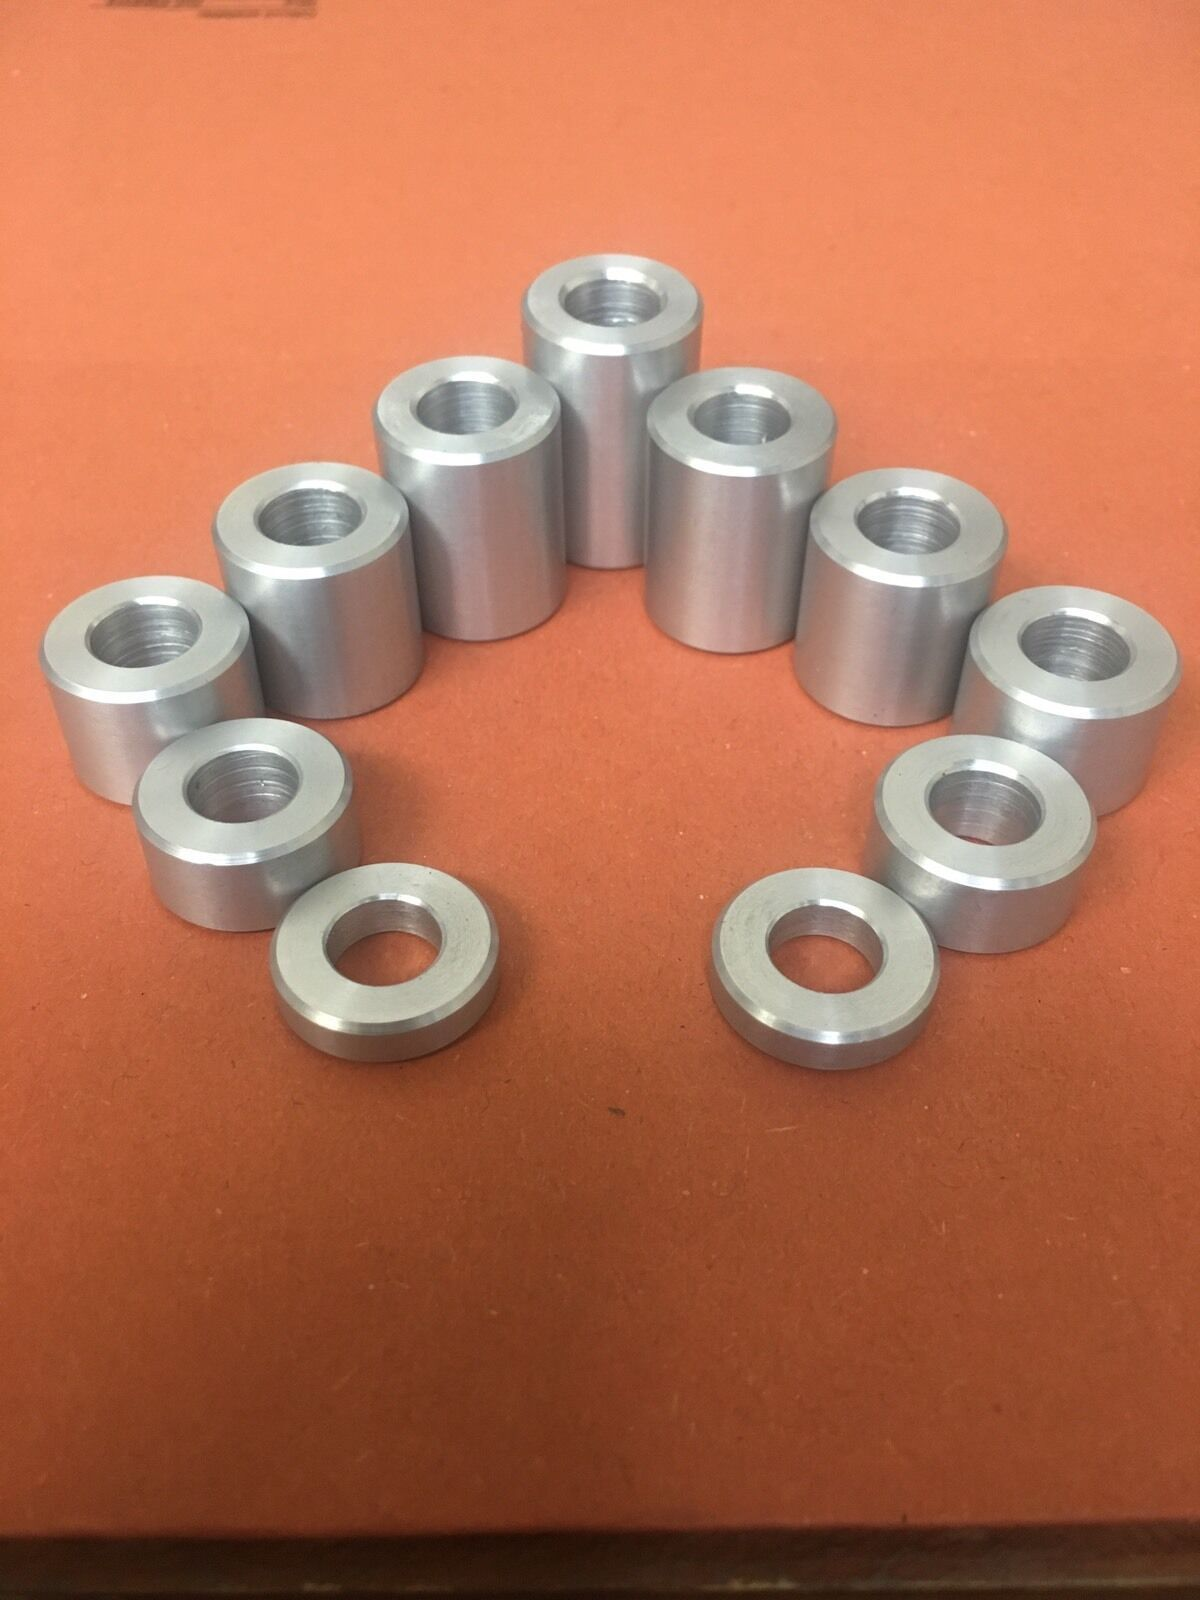 17MM Dia Aluminum Stand Off Spacers Collar Bonnet Raisers Bushes with M5 Hole